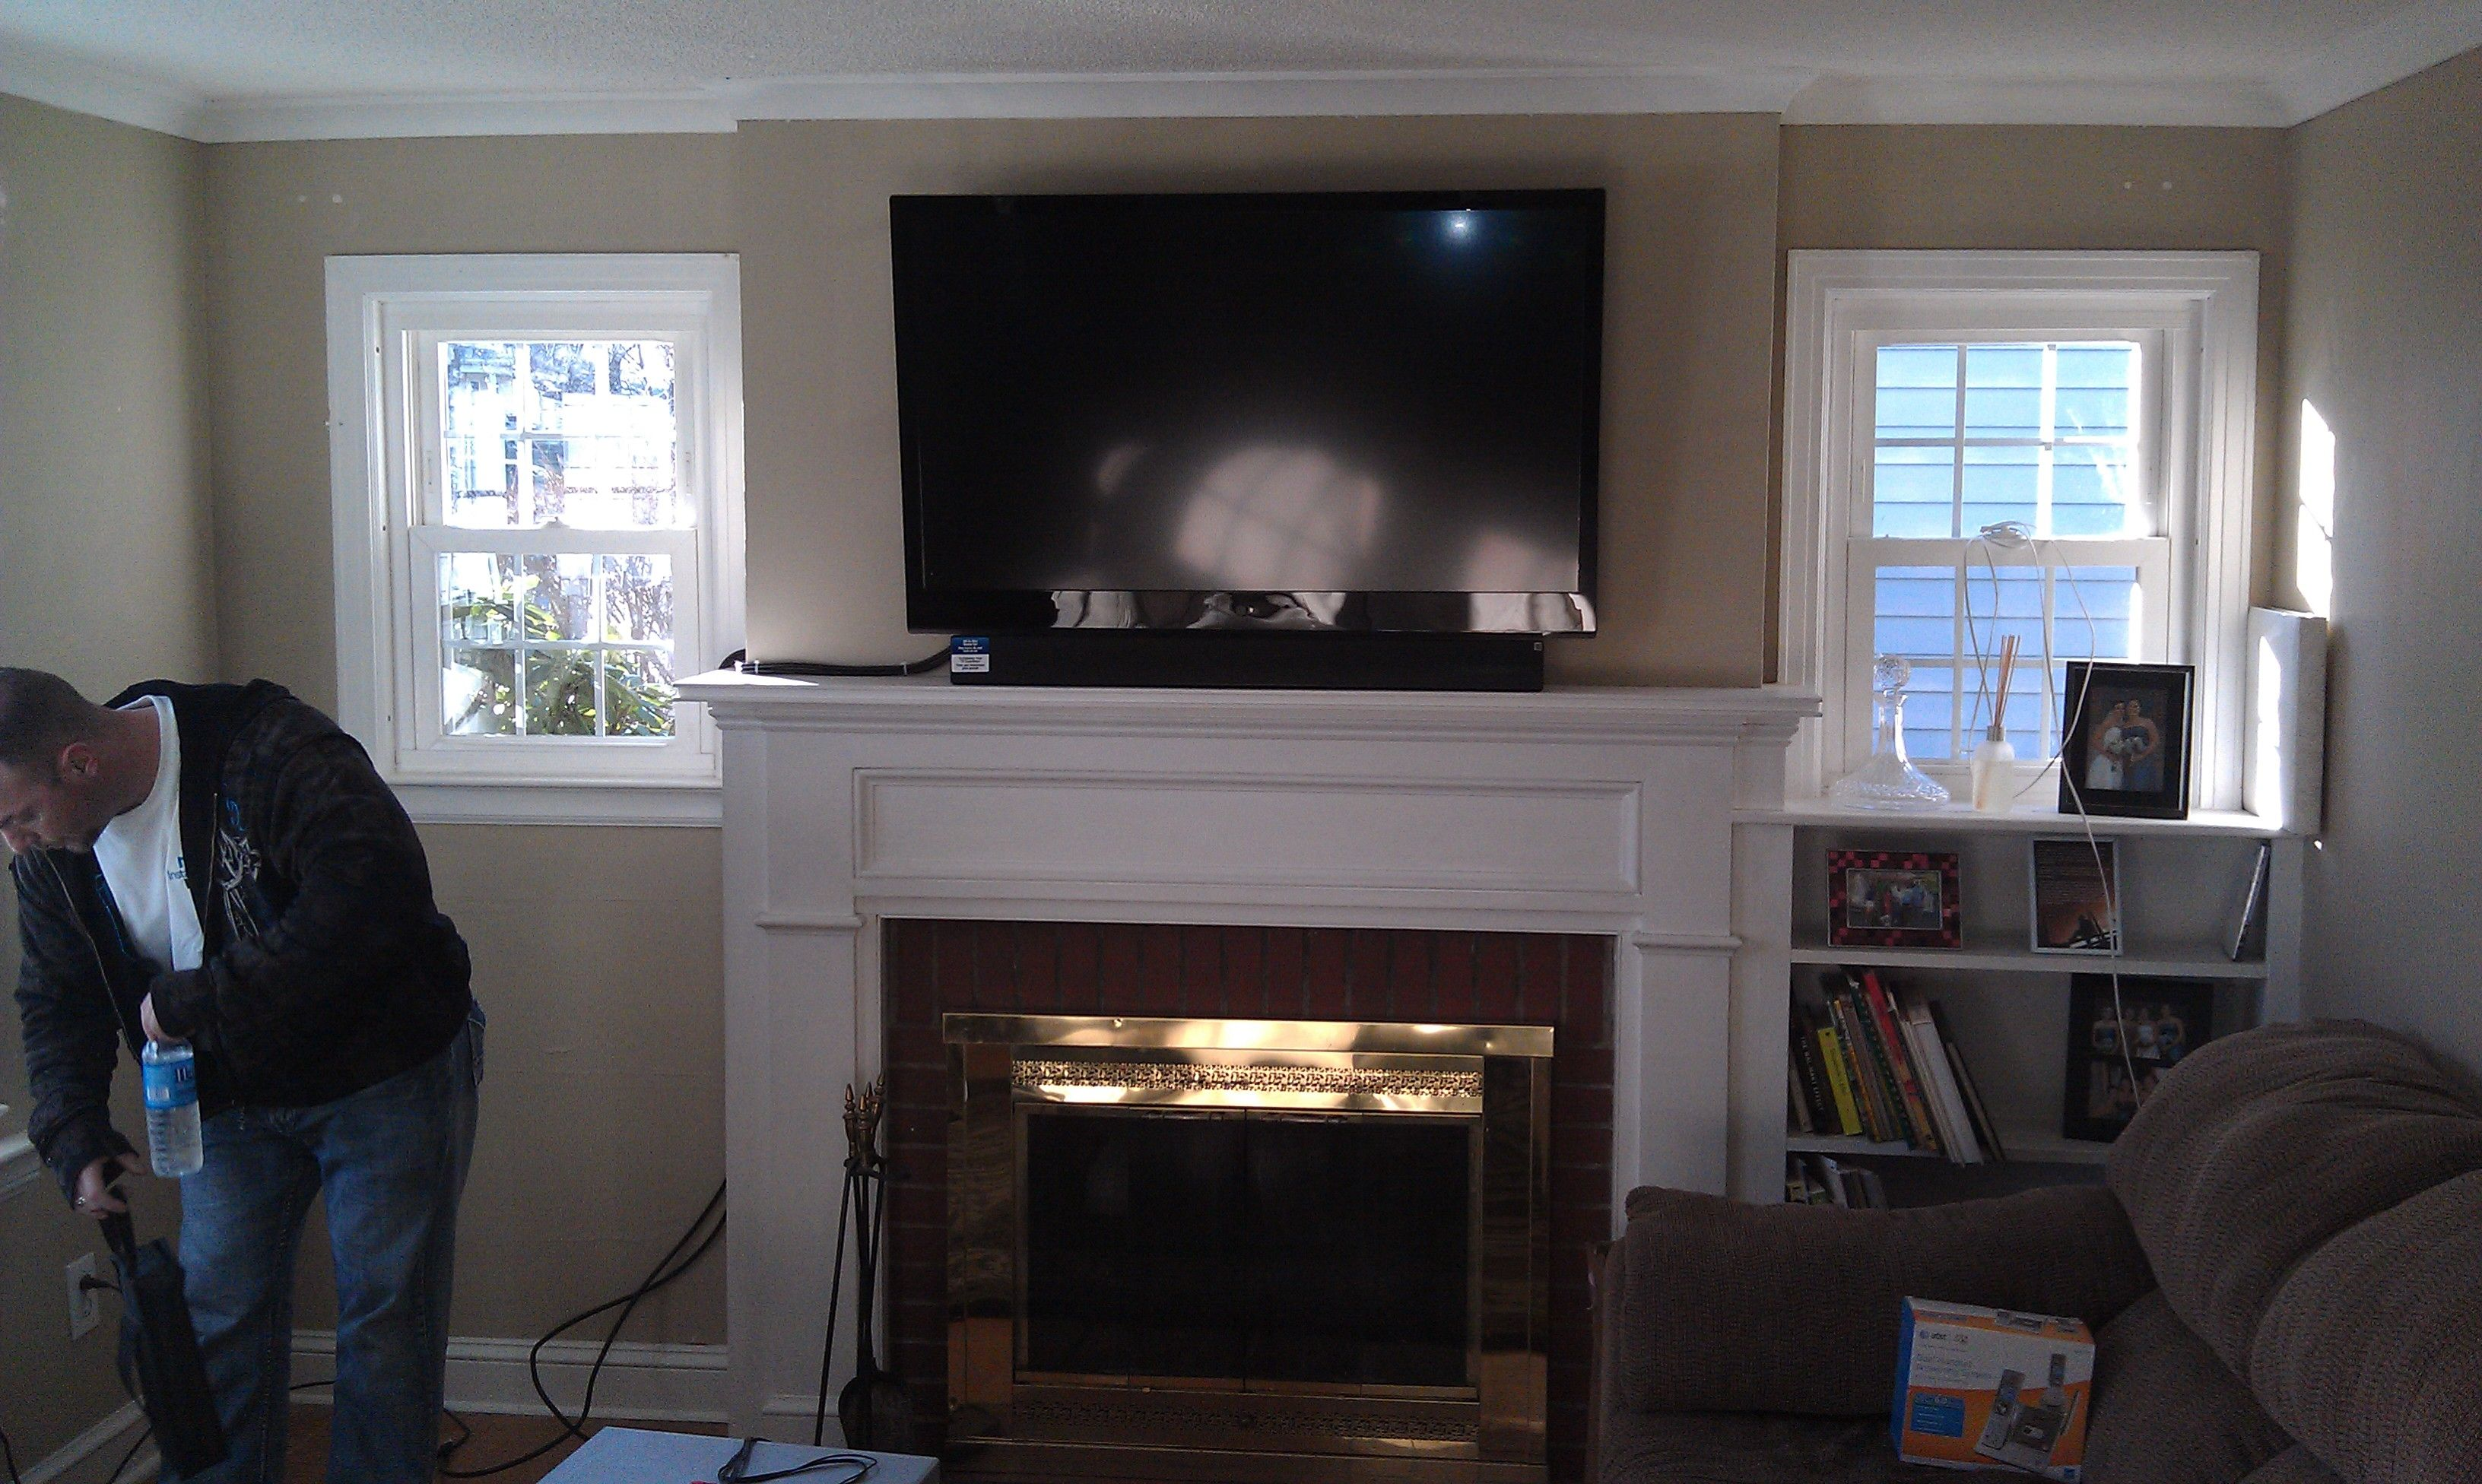 Mounting Soundbar On Wall Above Tv Tv Mounted Above Fireplace